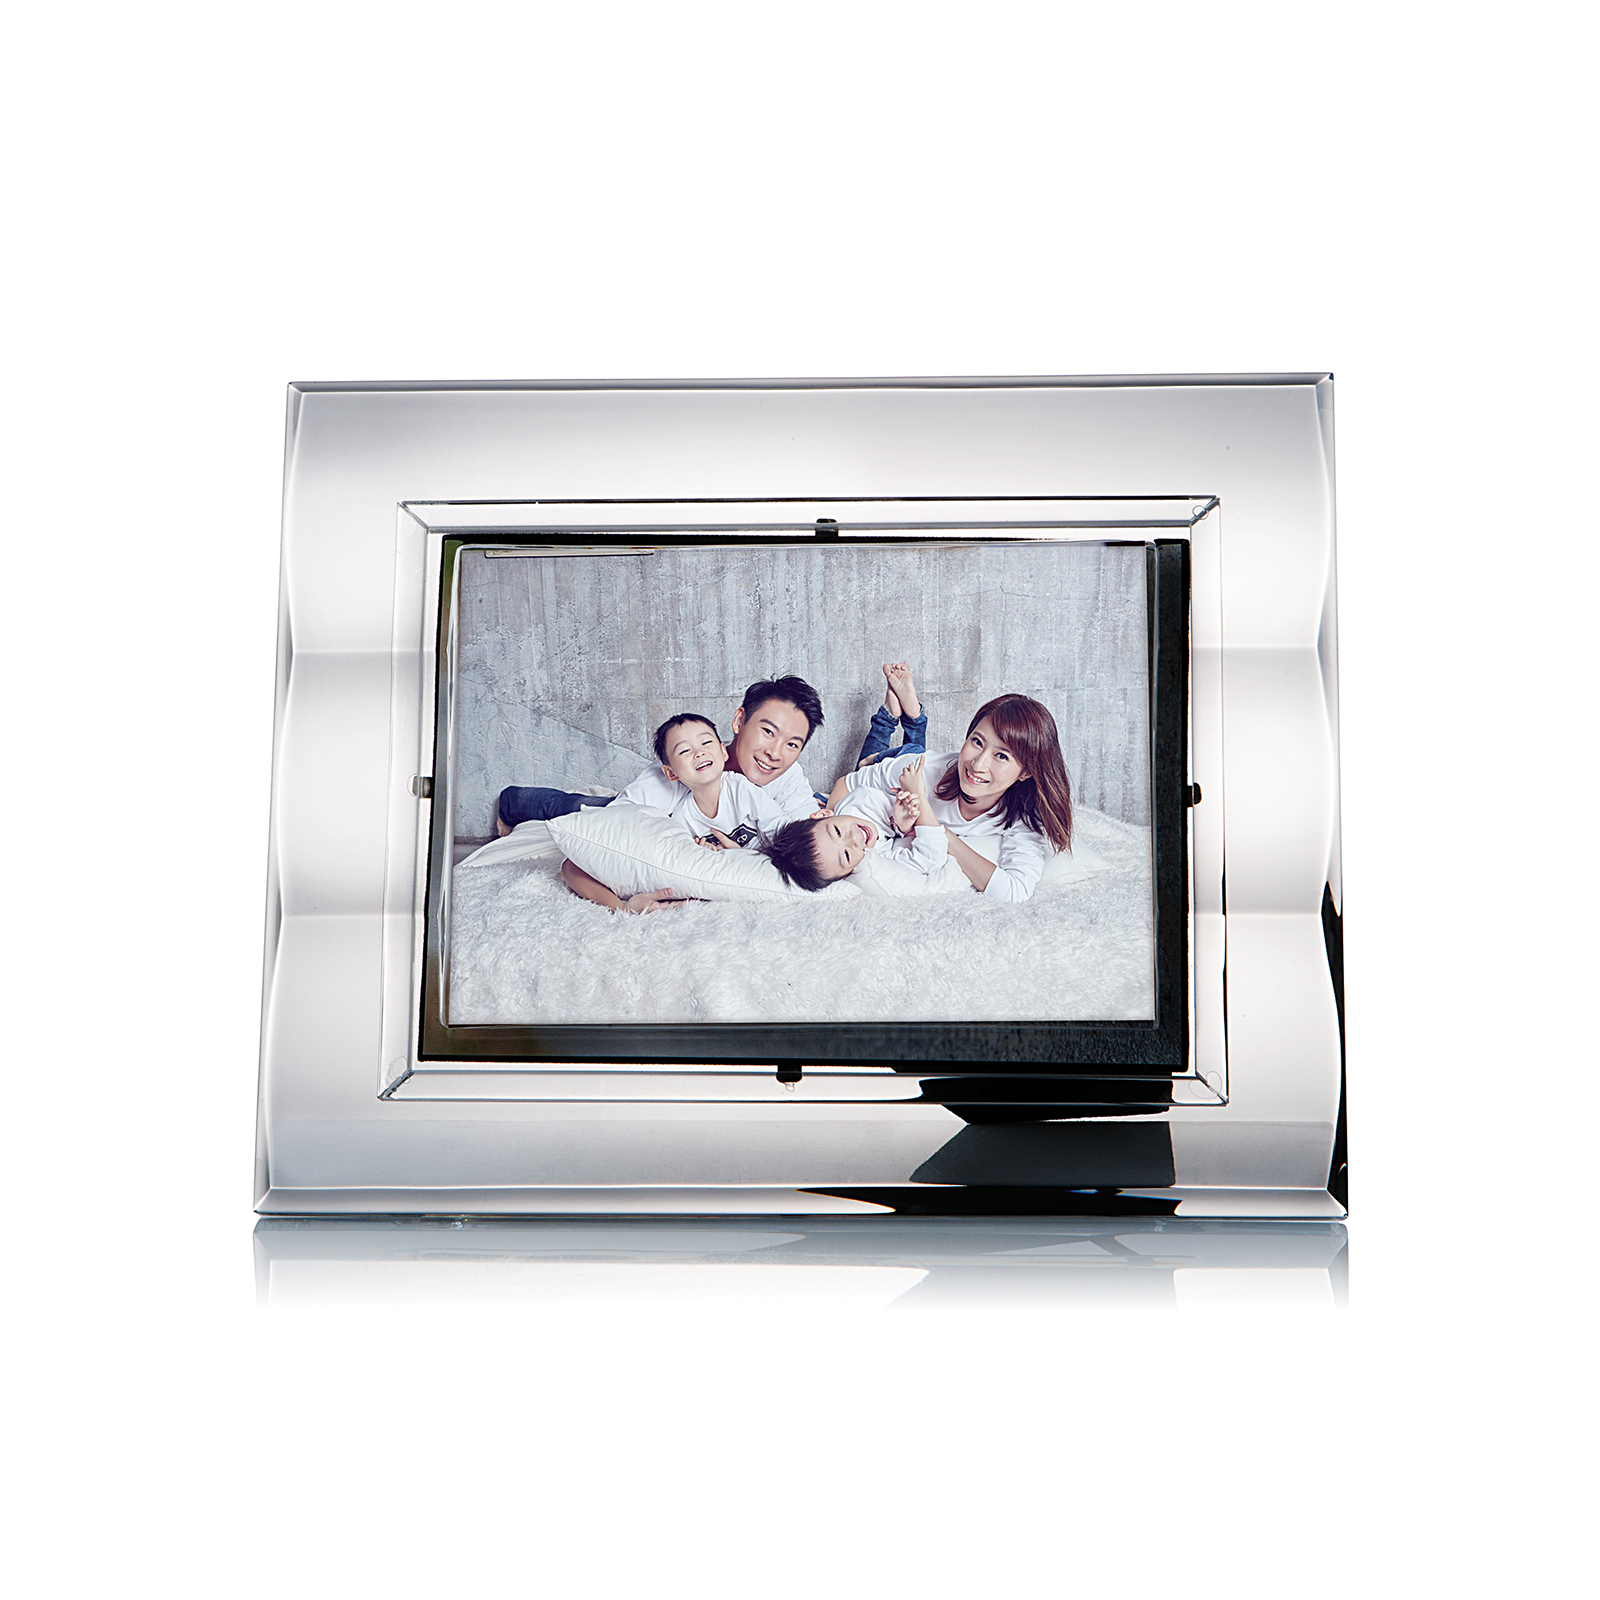 Rogaska Zoom S/1 Picture Frame 13x18cm 放大快樂系列 手工水晶 相框(5x7 照片用)